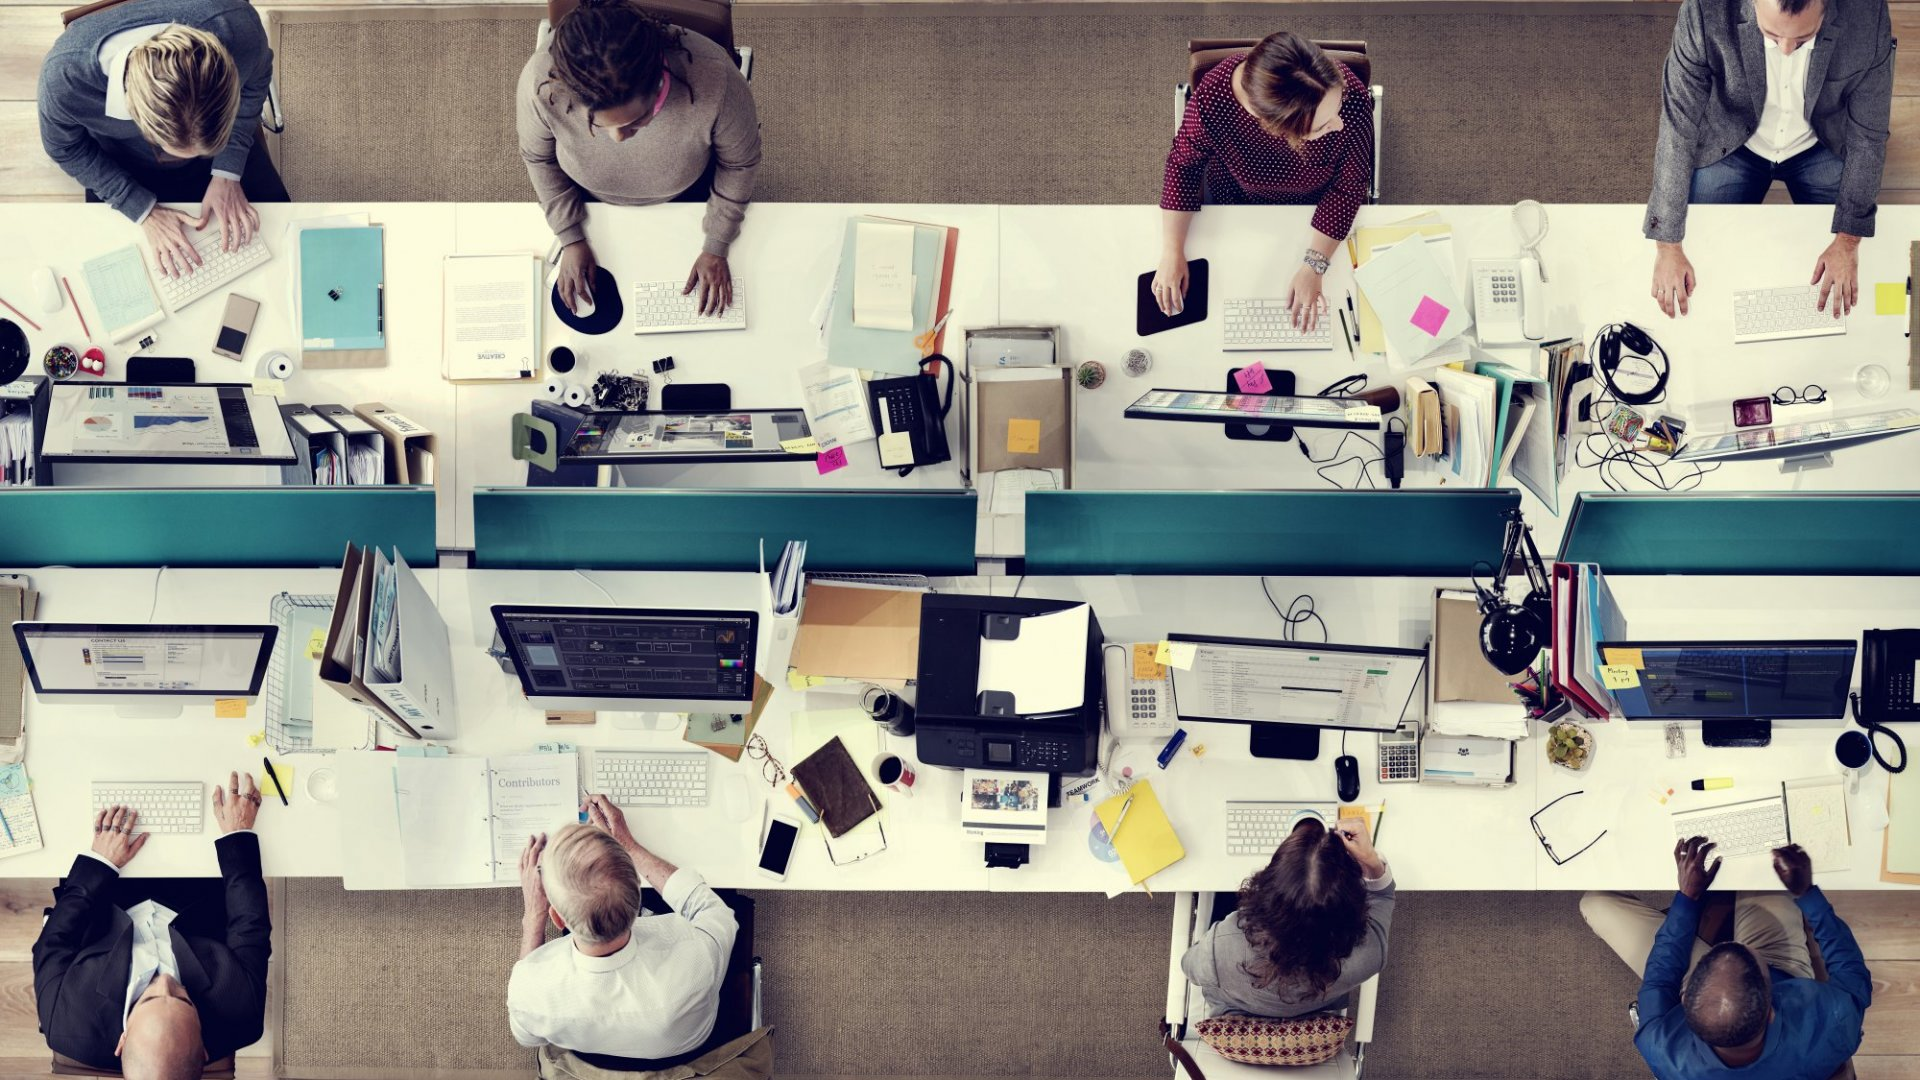 The Top 10 Things Employees Want in Their Office (No. 3 Will Surprise You)